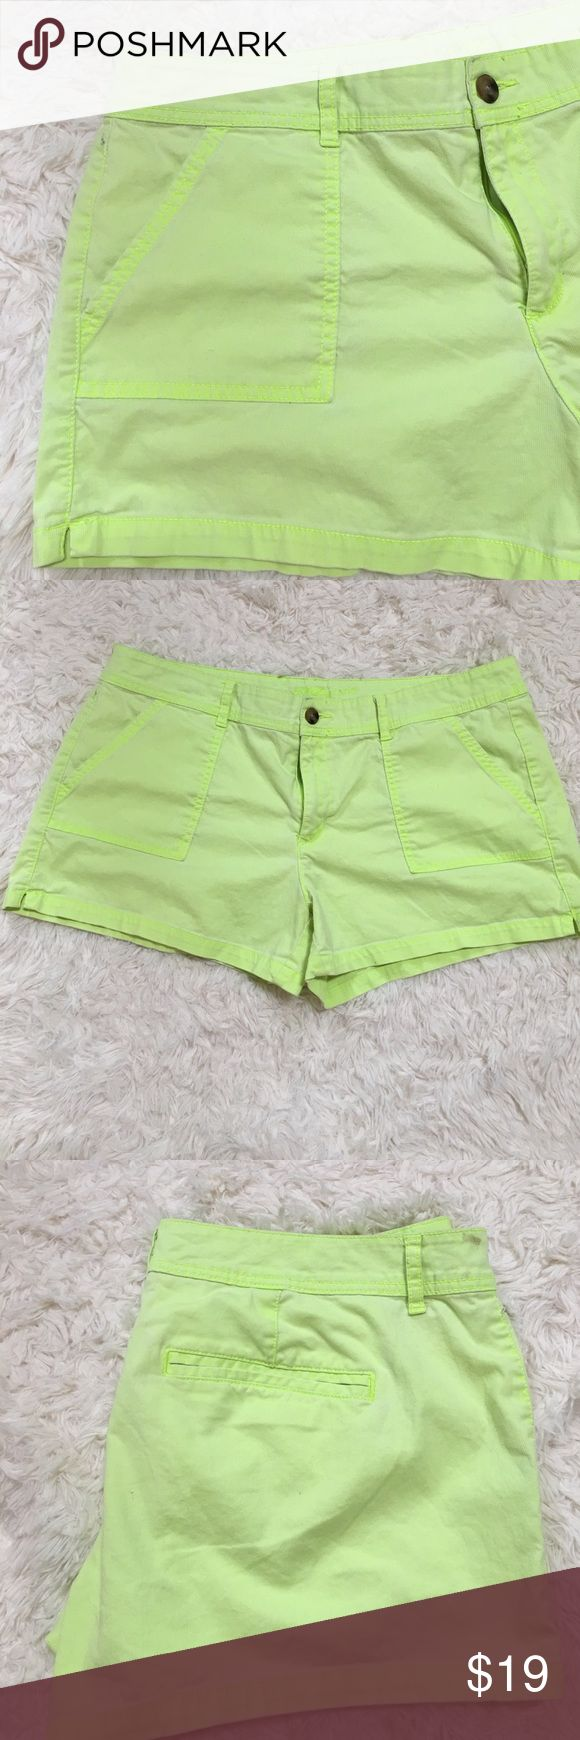 Arizona Jeans Lime Green Shorts w/pockets Size 19 Very cute Lime Green 👒 shorts Arizona Jean Size 19...pockets in both front and back...Summer is coming...!!!...🌞 Arizona Jean Company Shorts Jean Shorts